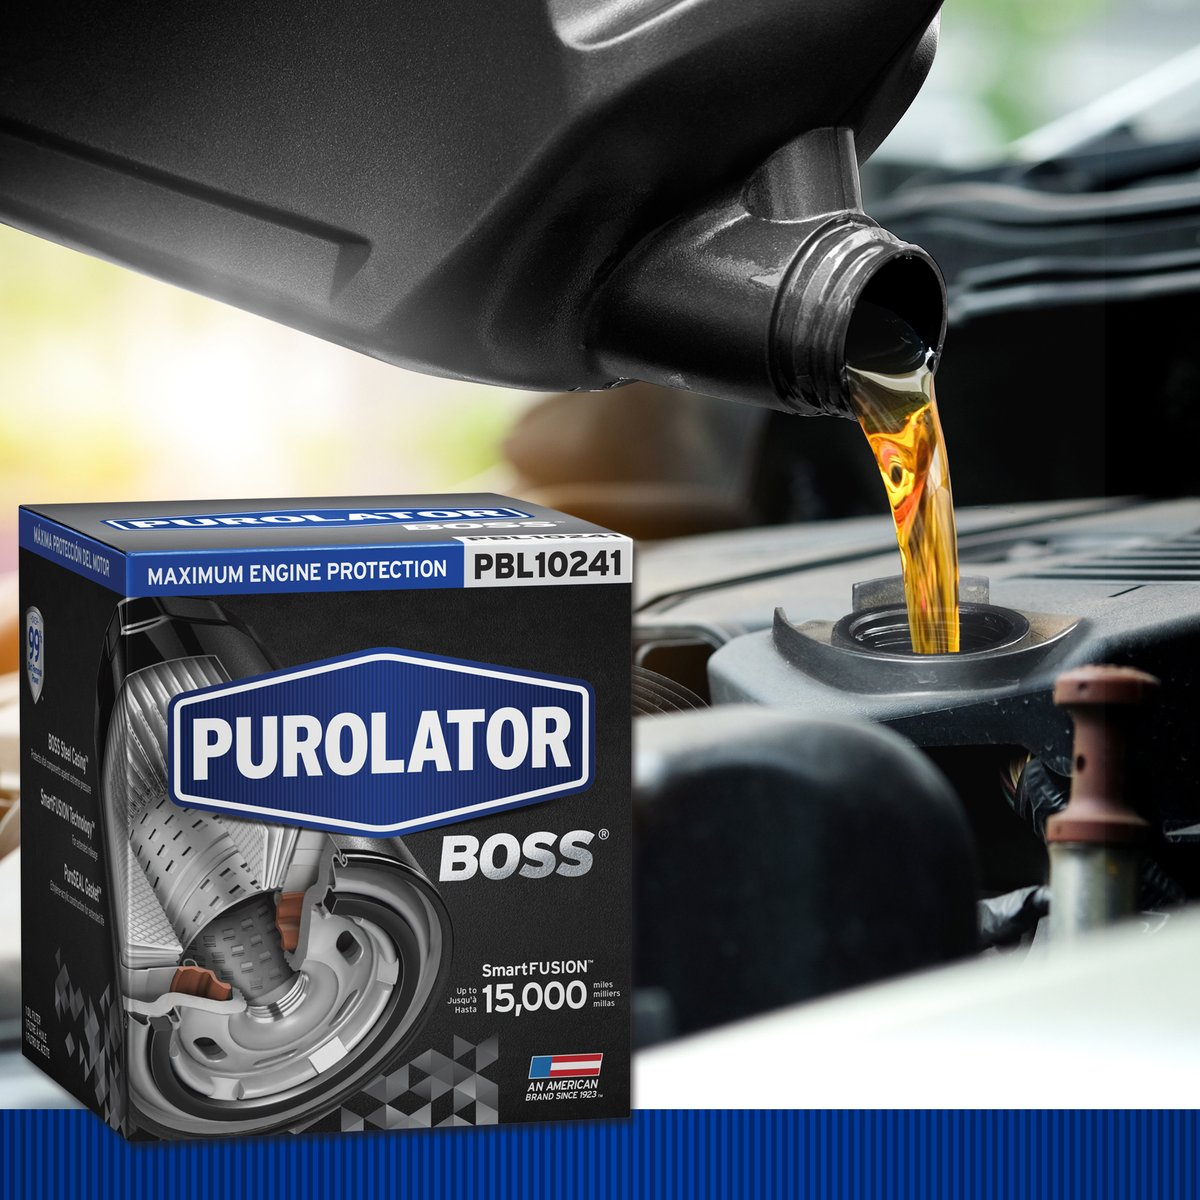 Save now on a PurolatorBOSS Premium Oil Filter paired with Castrol EDGE full synthetic motor oil at Advance Auto Parts. Filter + five quarts of oil = $33.99. #oilfilter https://t.co/GiPfbXu0eR https://t.co/6ozEXUOPeQ